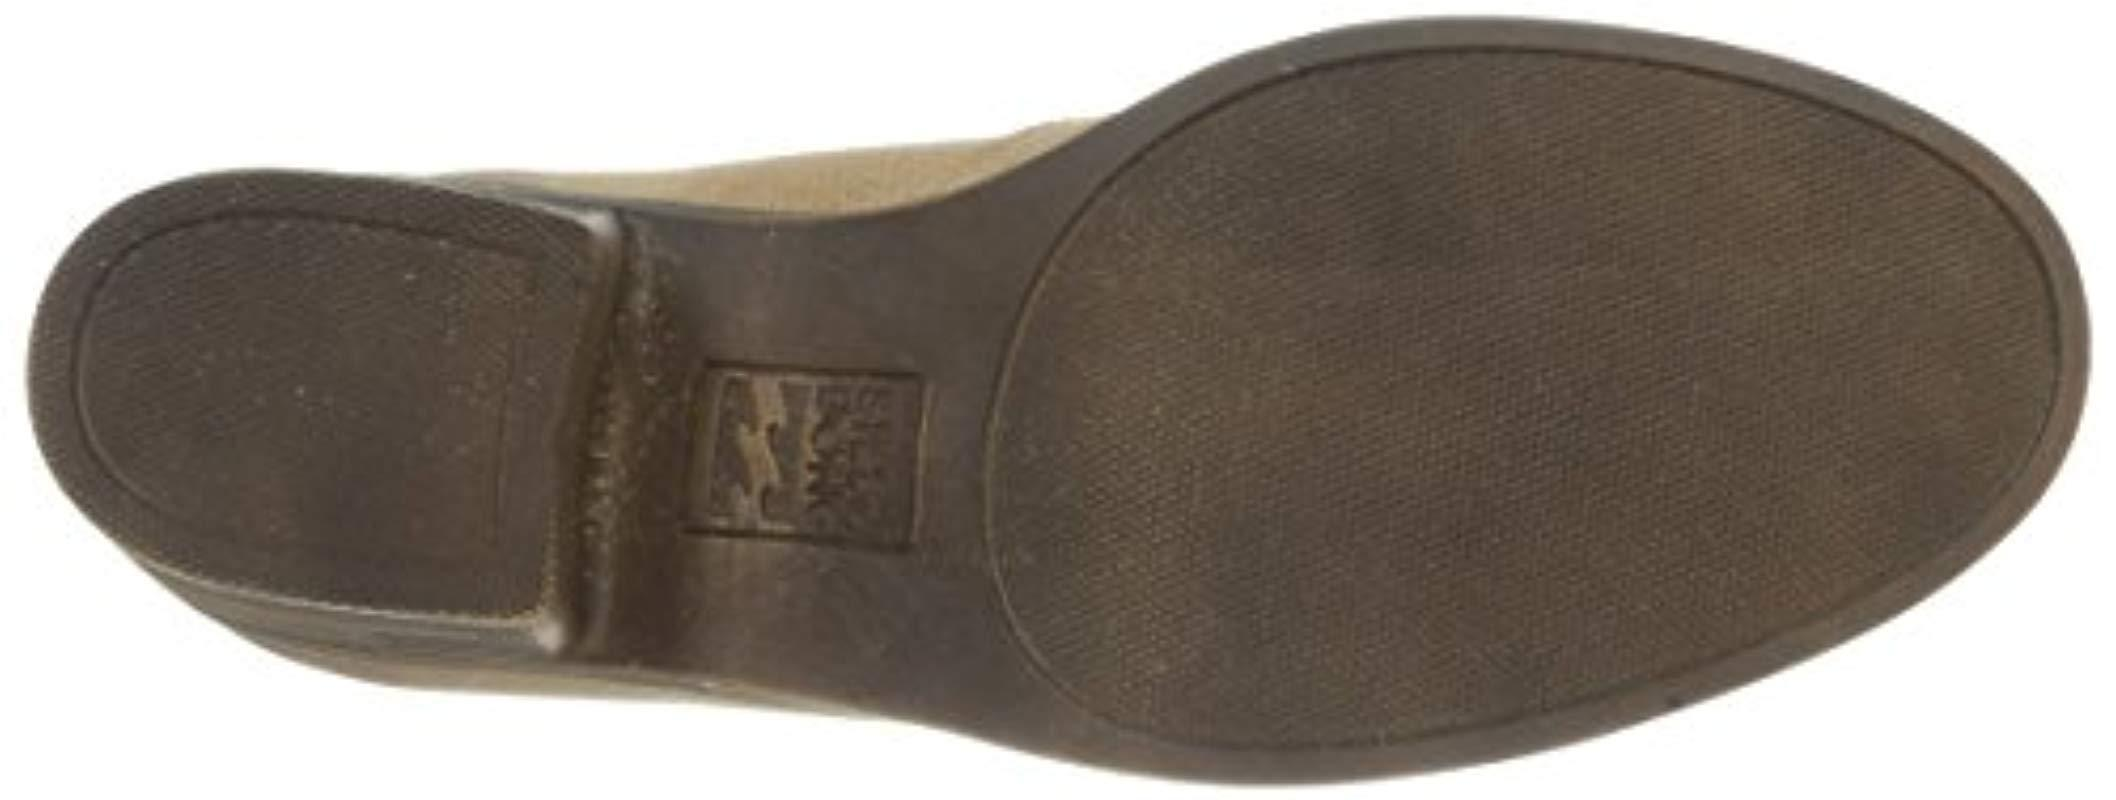 Billabong Eccentric Youth Boot in Brown